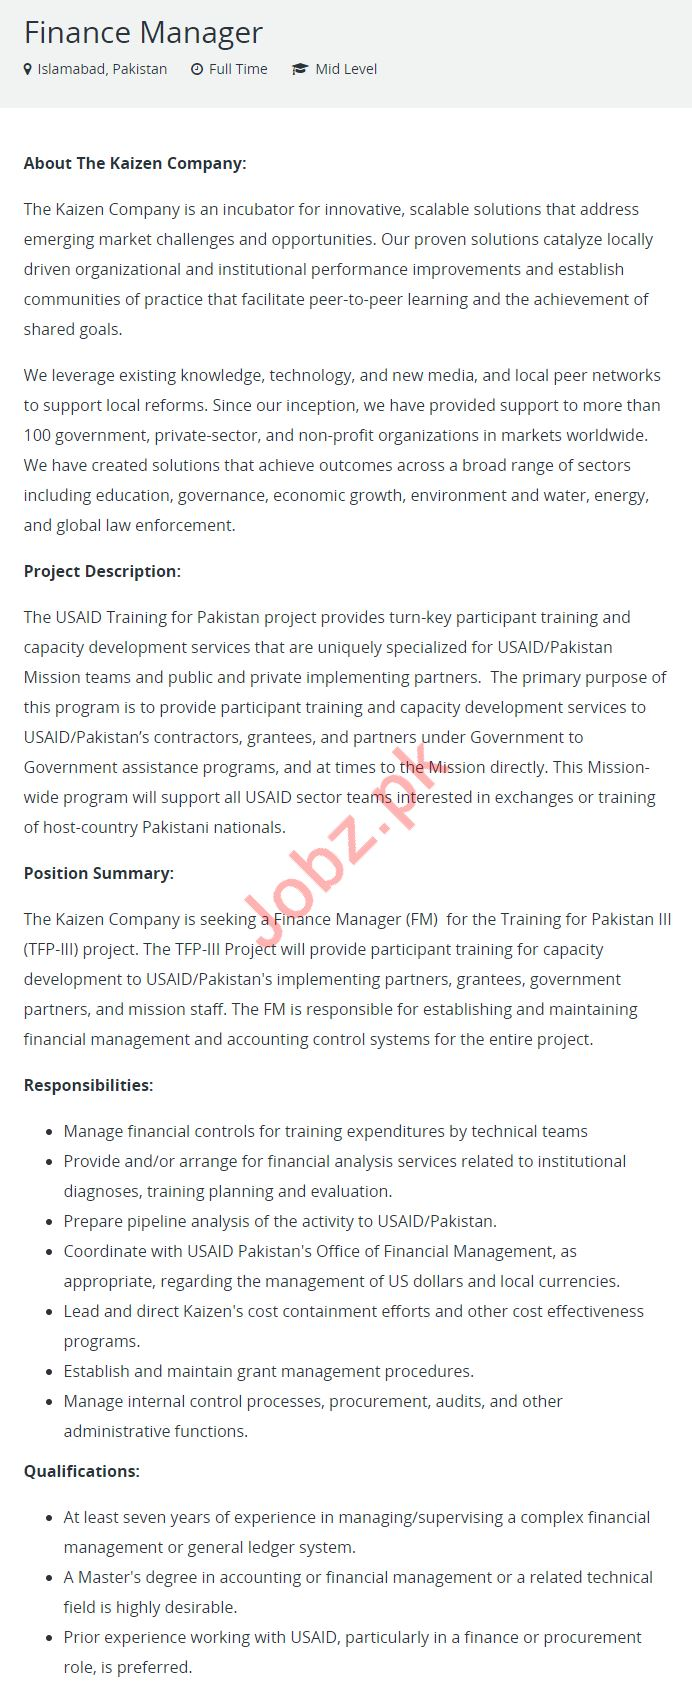 Finance Manager Job Description Finance Manager Job 2019 In Islamabad 2019 Job Advertisement Pakistan